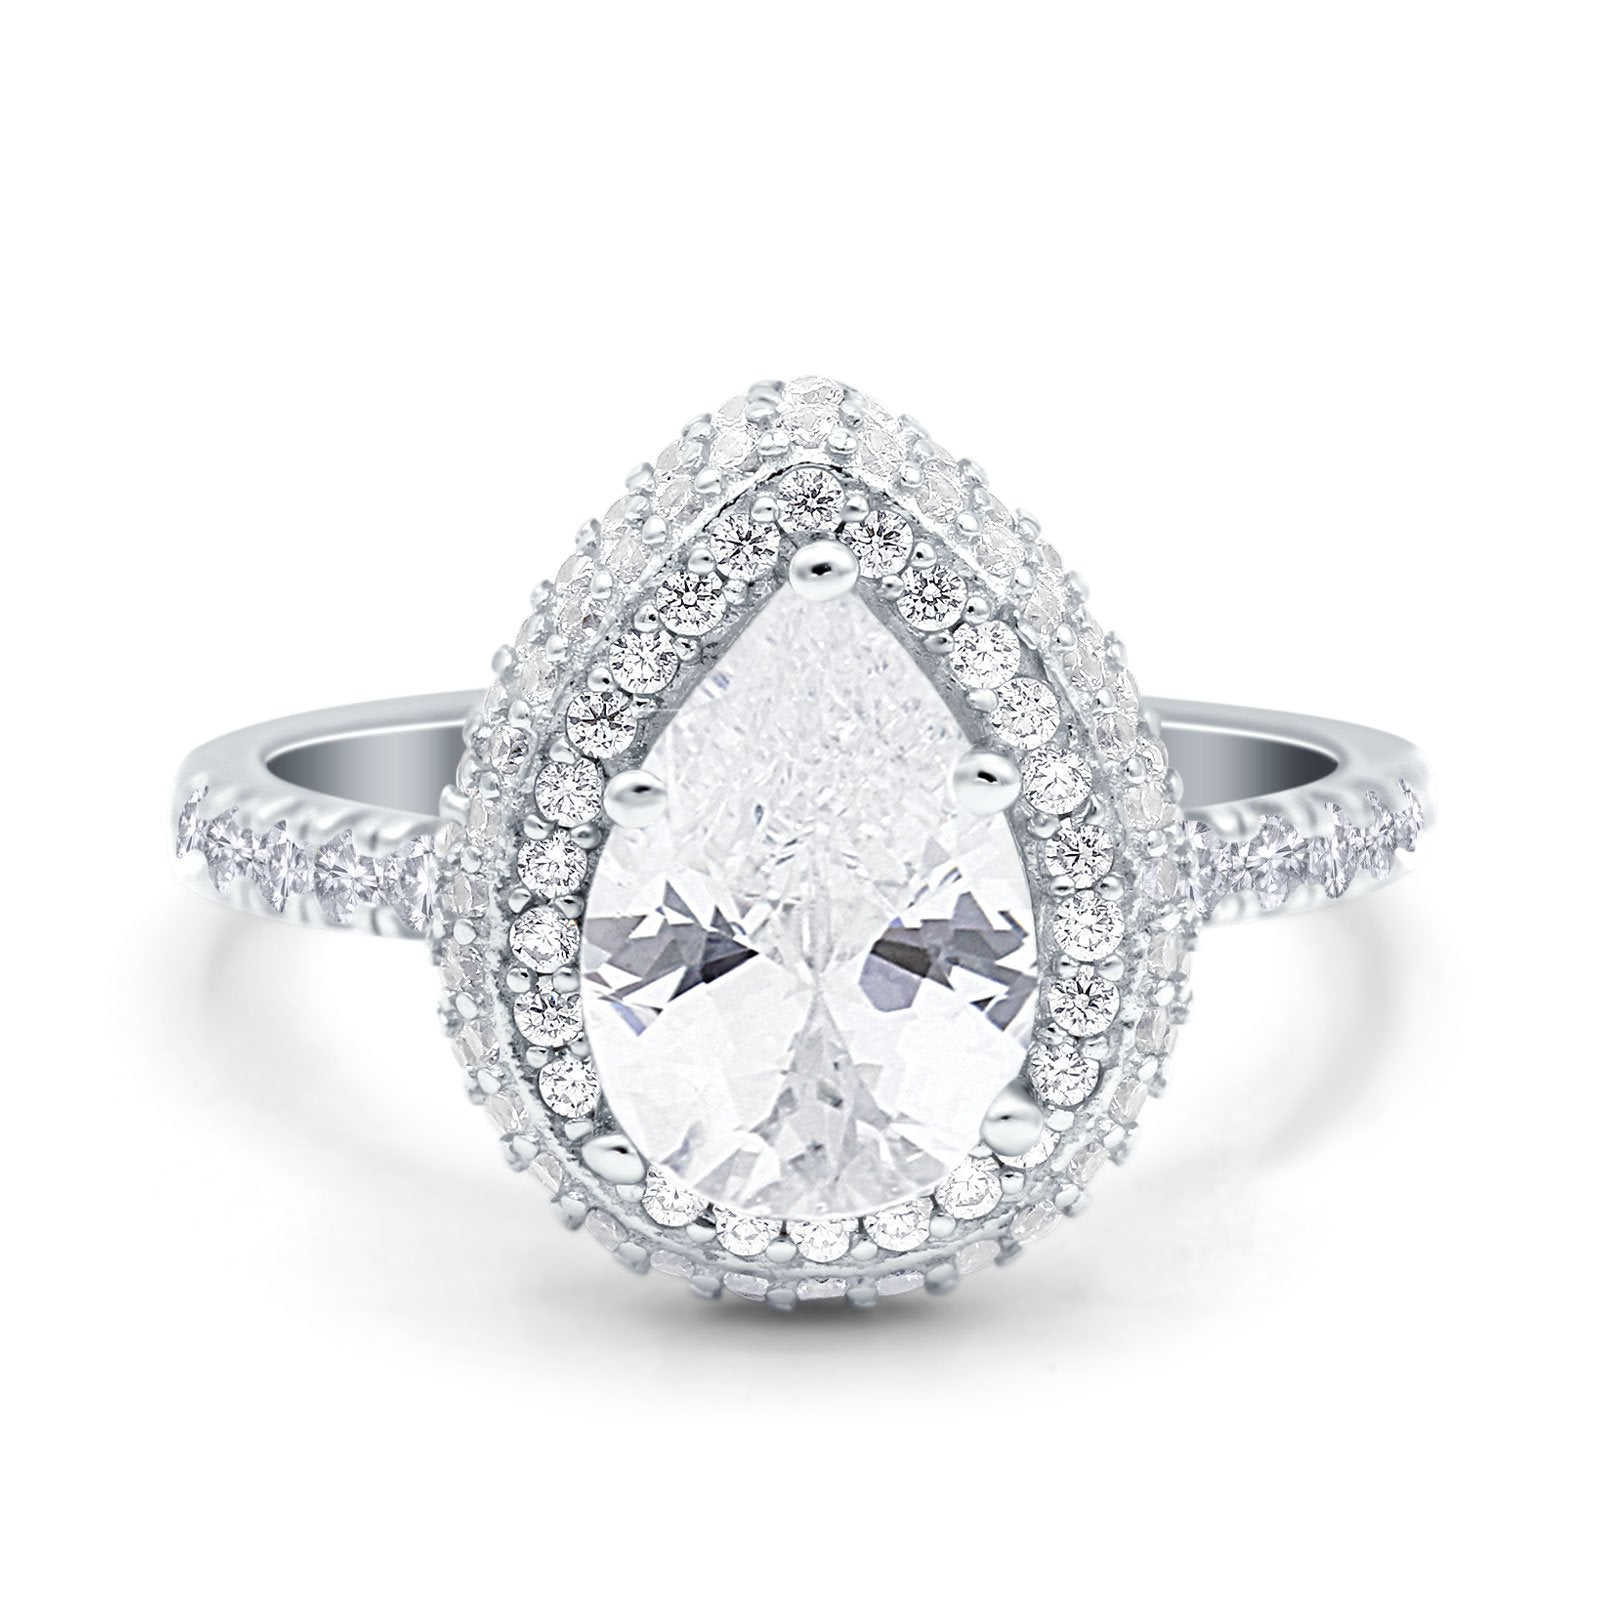 Teardrop Pear Art Deco Vintage Engagement Ring Simulated Cubic Zirconia 925 Sterling Silver